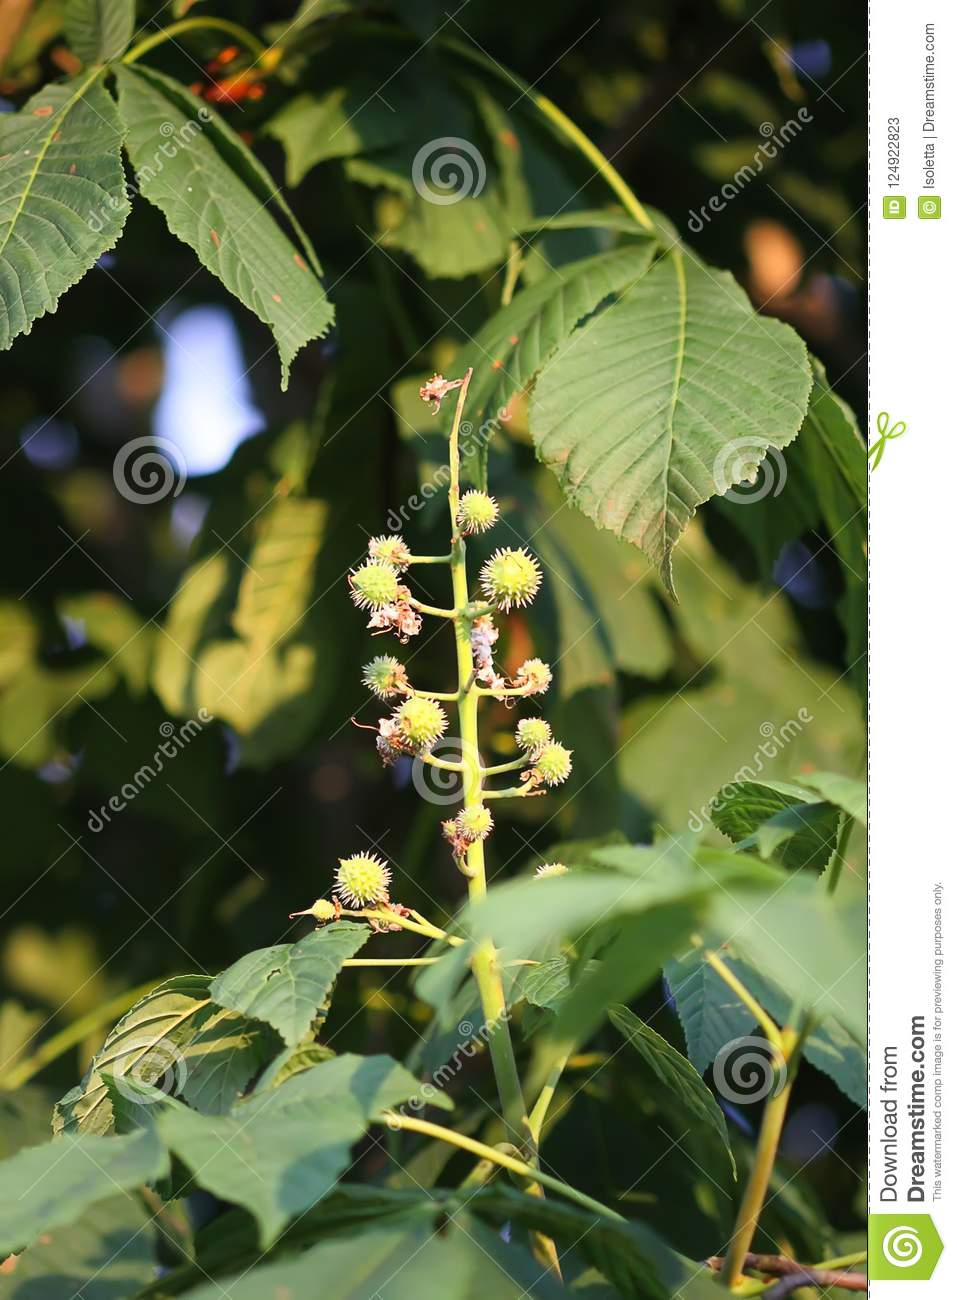 Young green unripe prickly chestnuts on tree branch